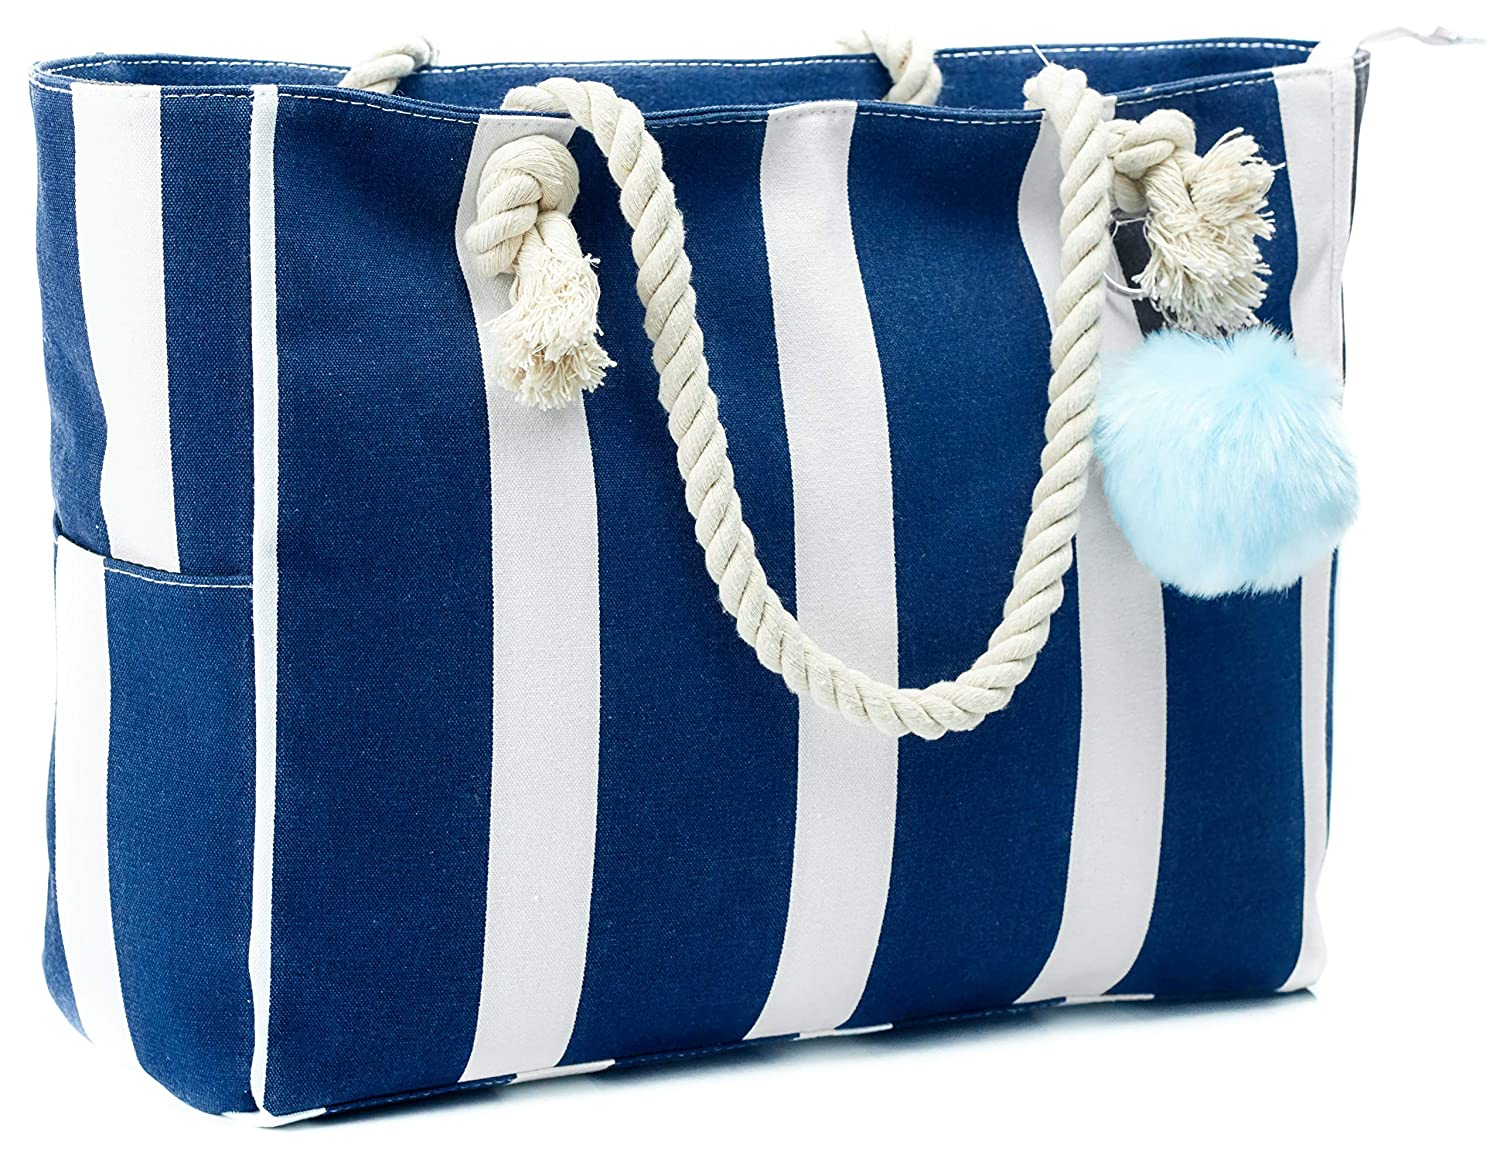 585c7efcaf3 Large Canvas Shoulder Bag - Beach Tote with Cotton Rope Handles and Cute  Pompom